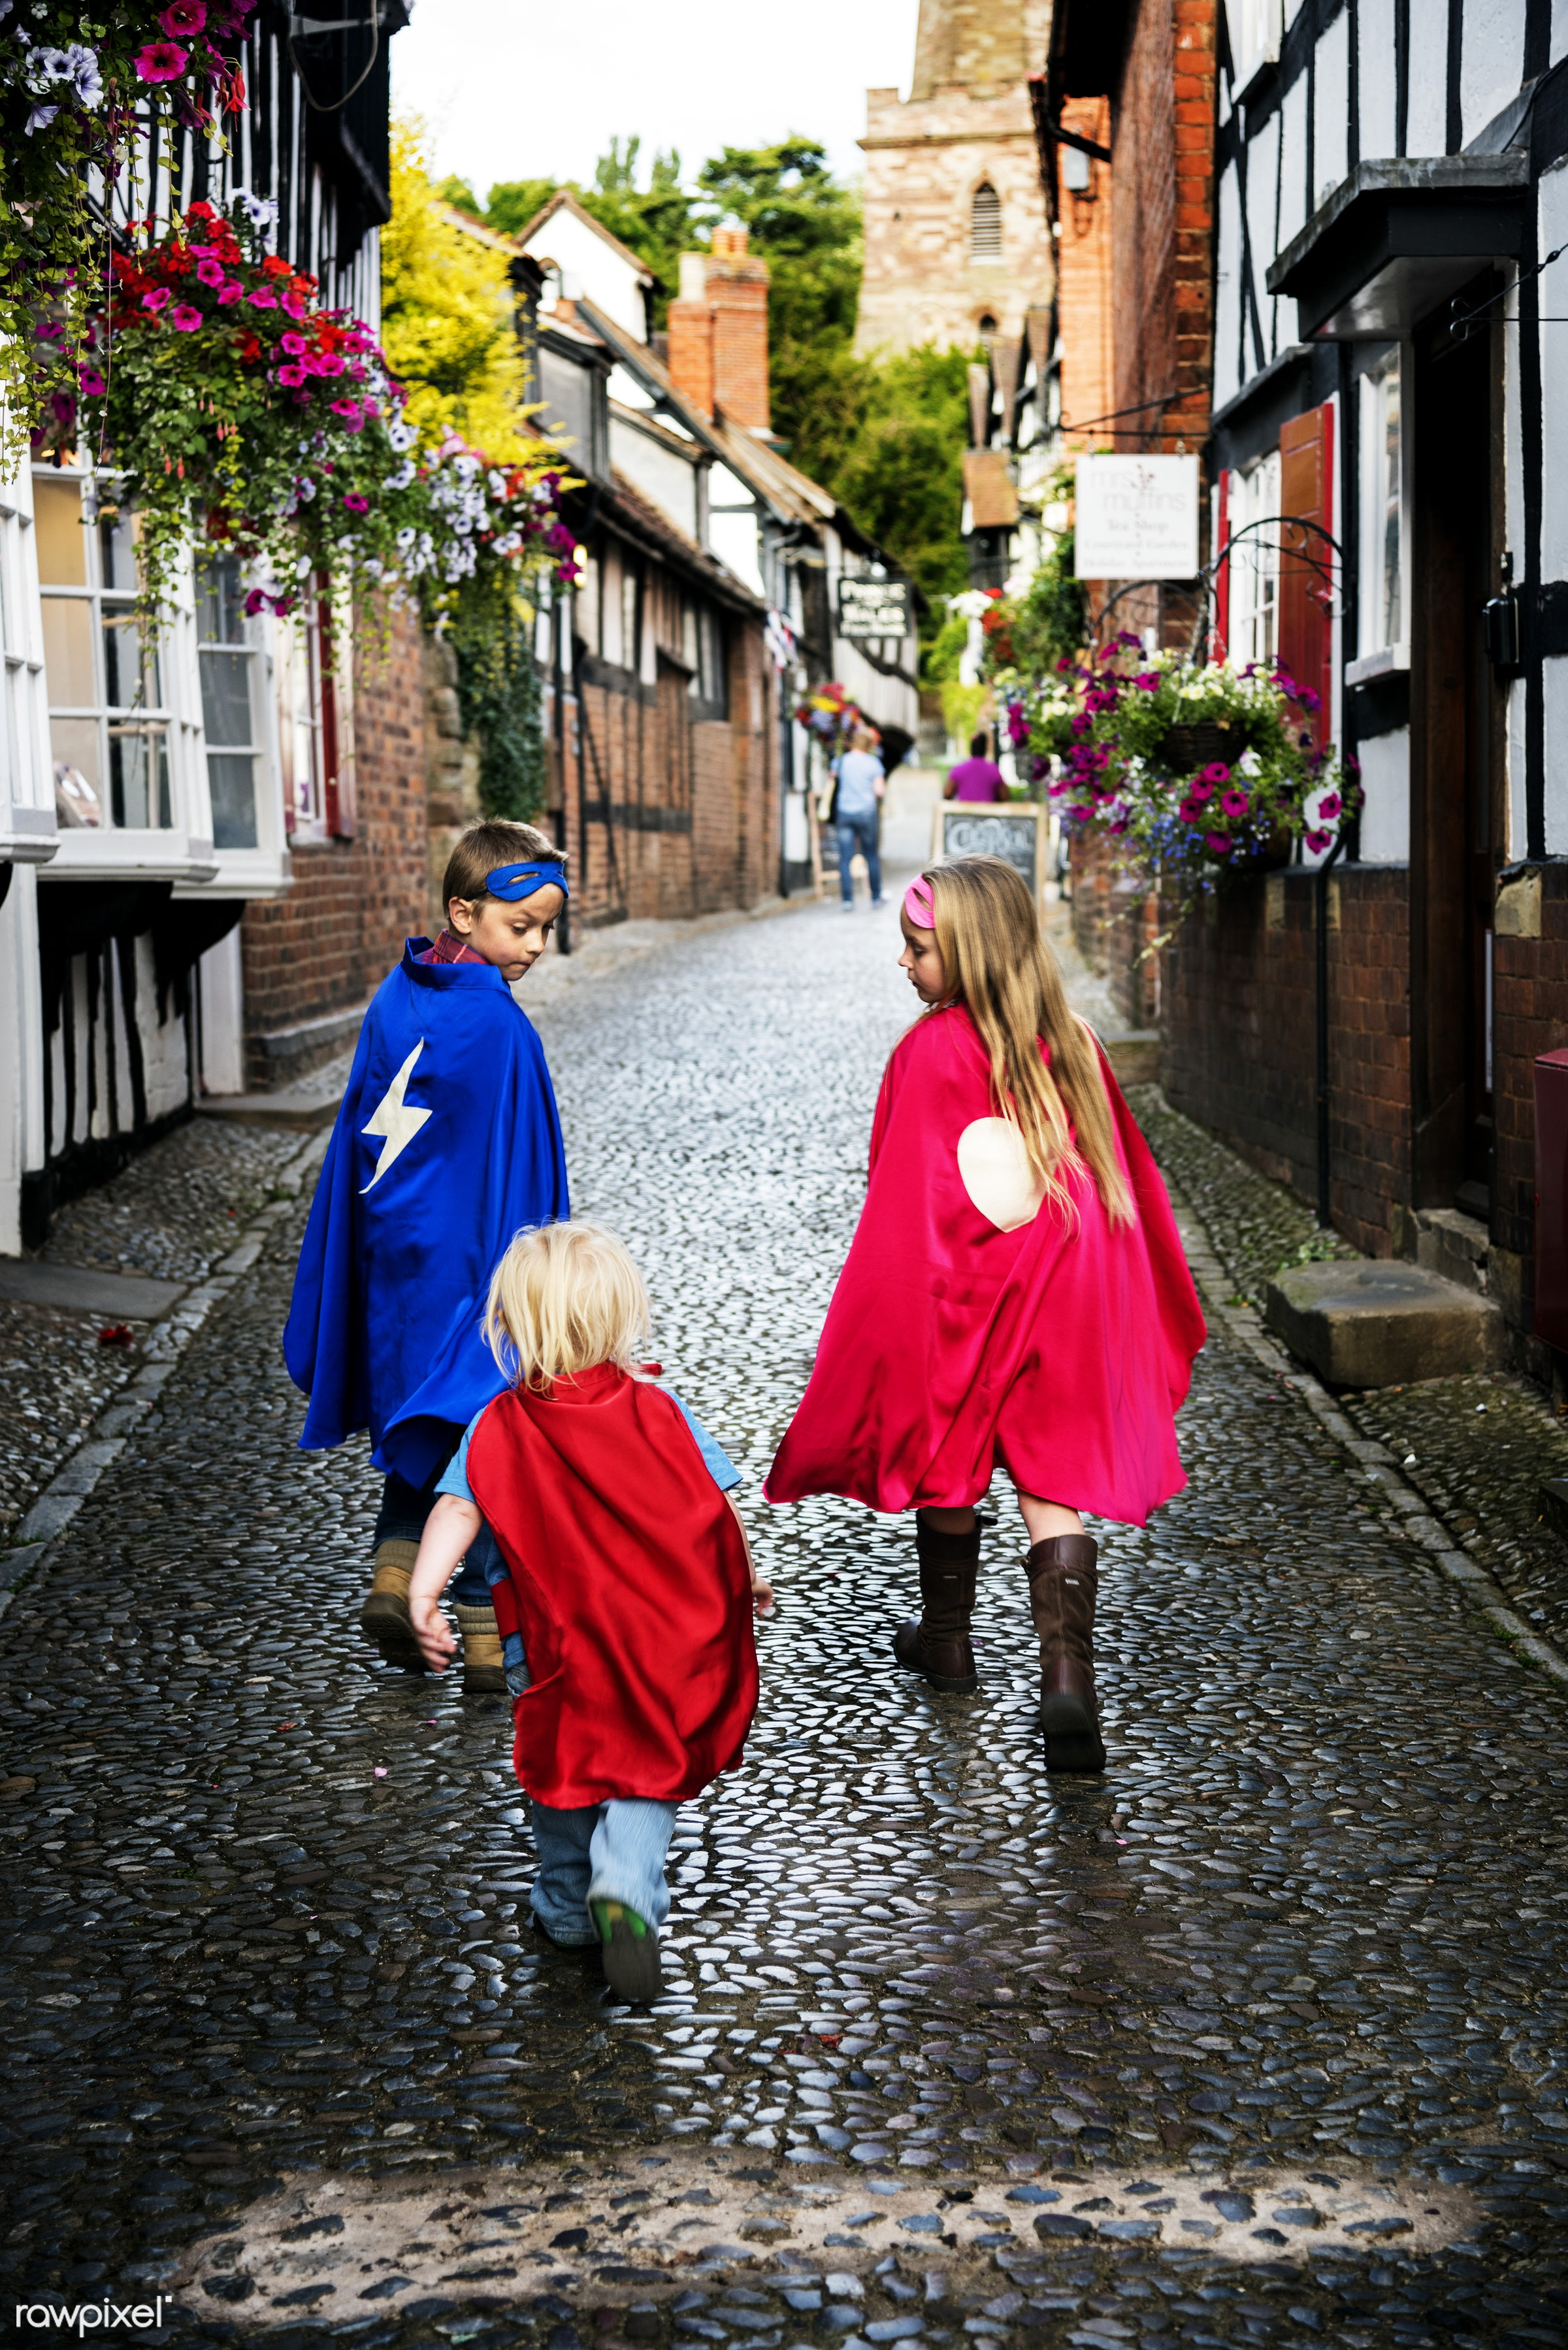 Caucasian children superhero and play shoot  - activity, aspirations, brave, brother, cheerful, child, childhood, colourful...